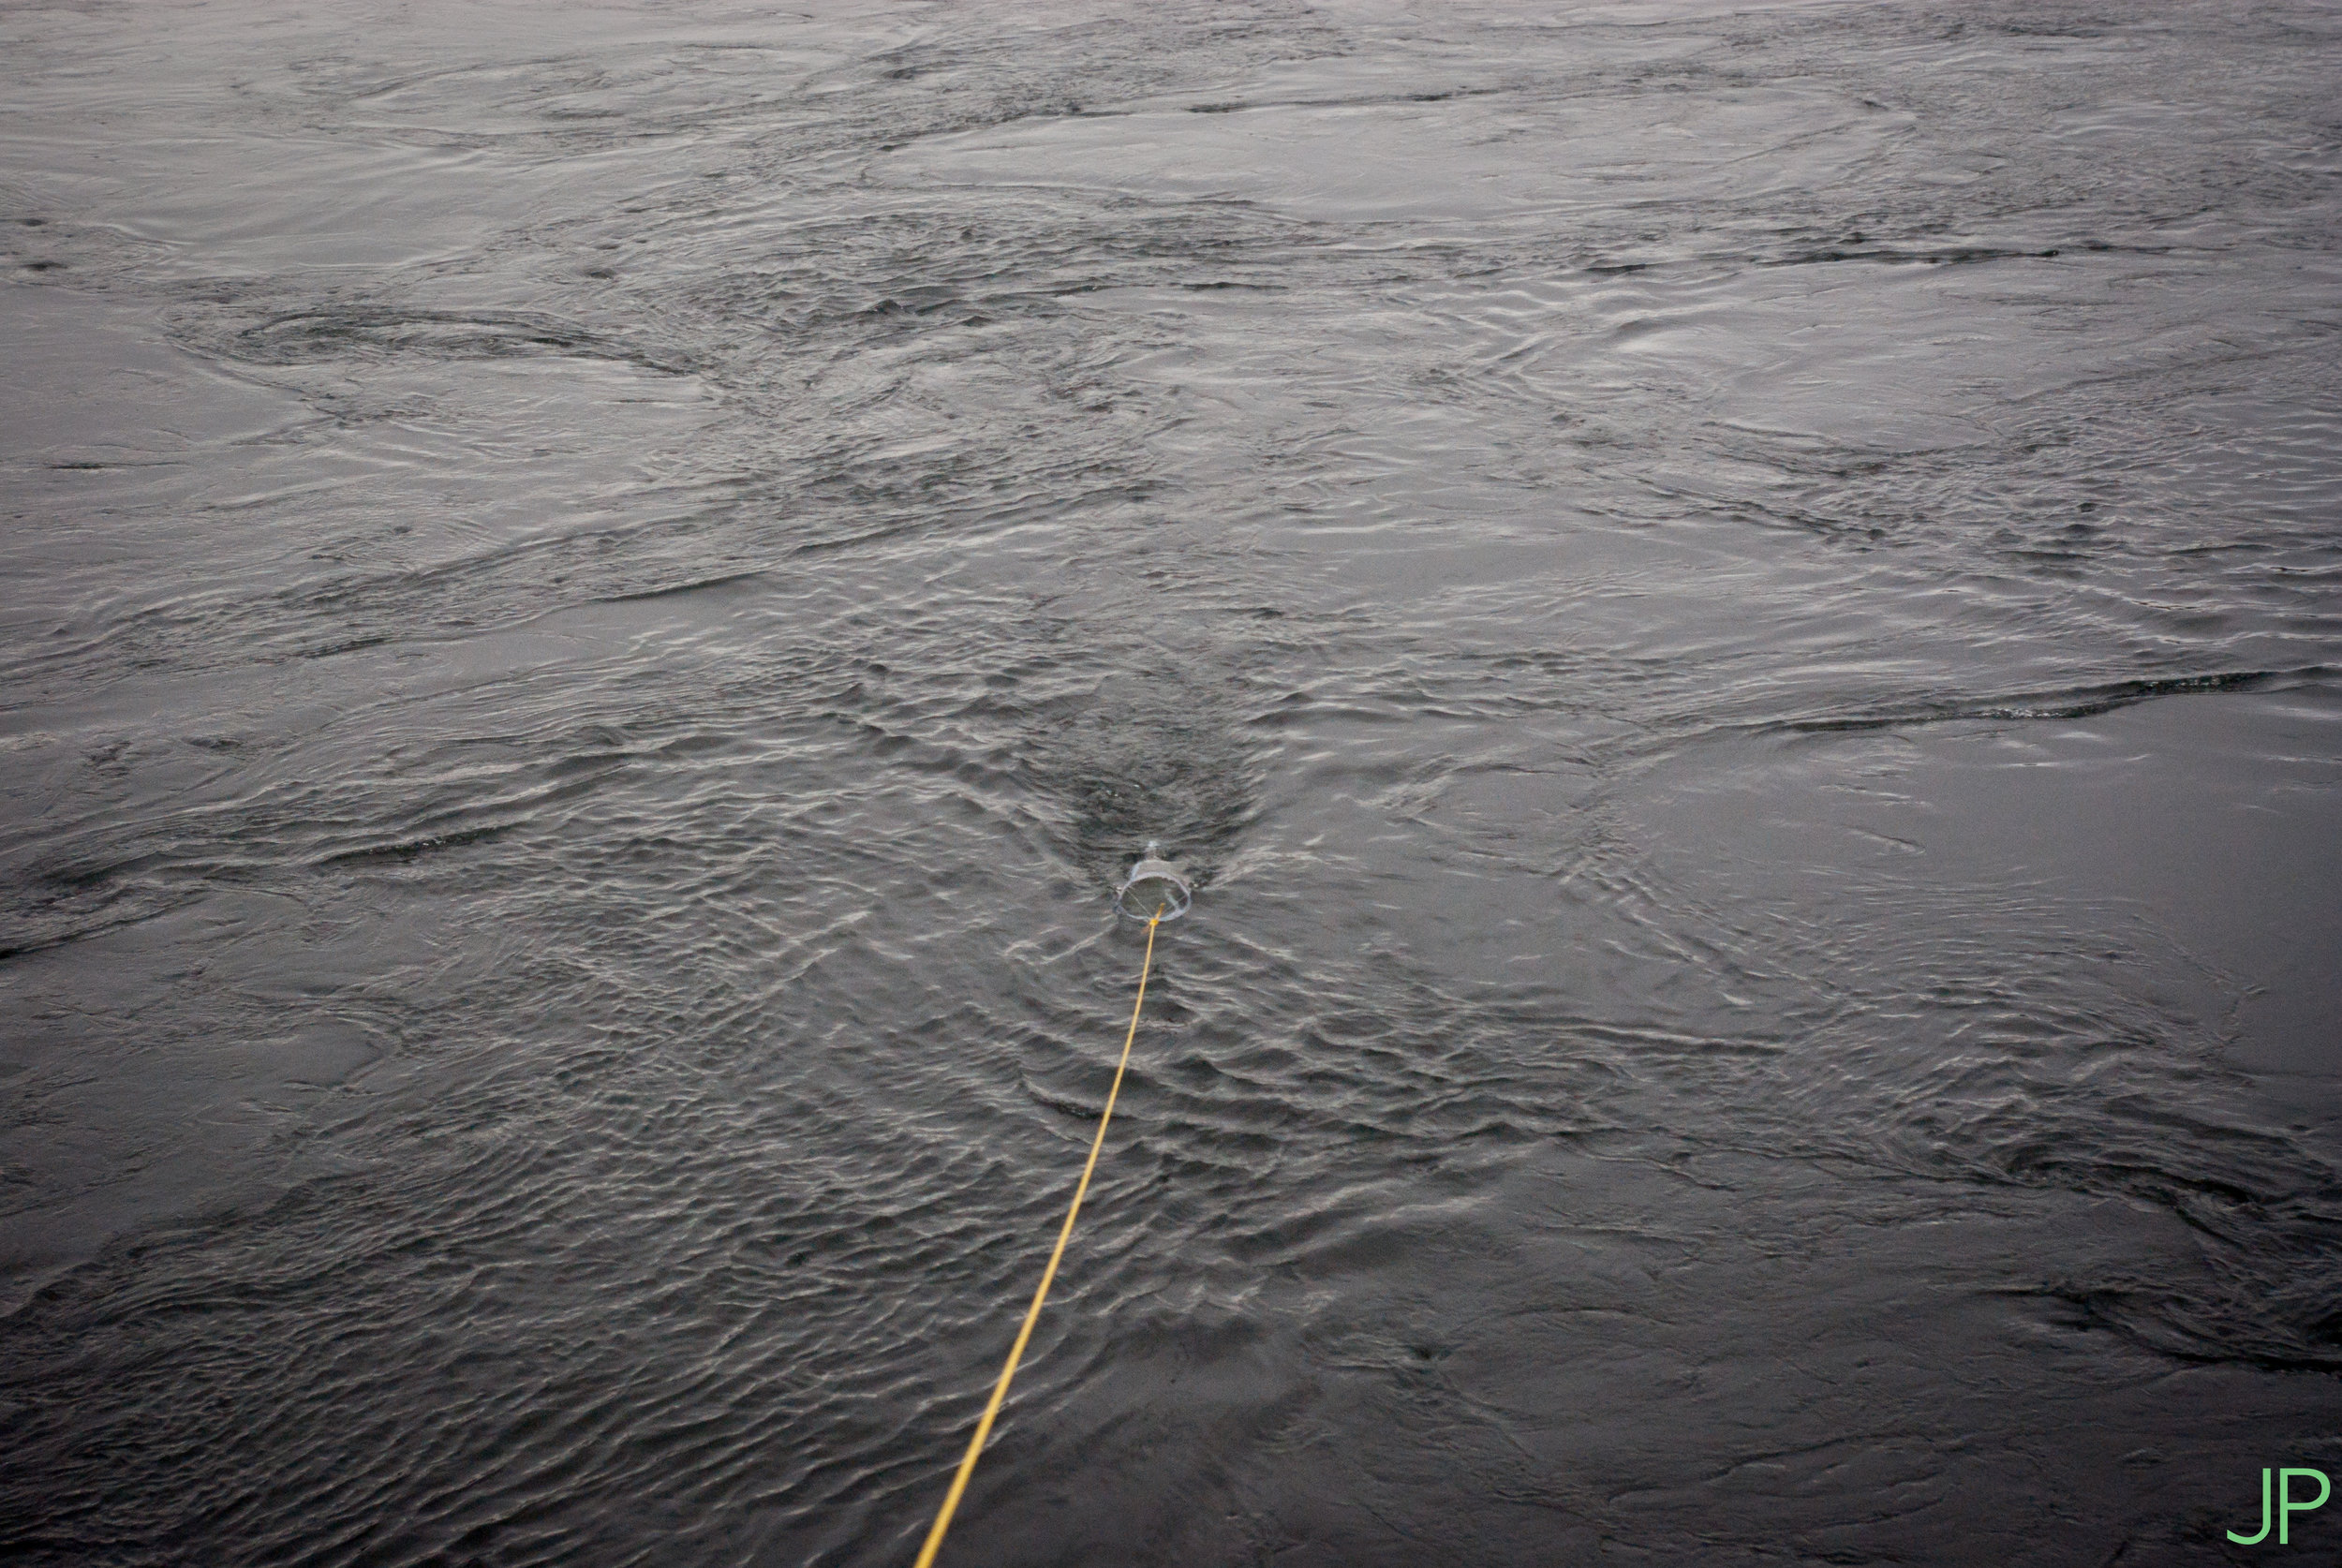 Sampling for microplastics involves towing a net in the river to filter capture the microplastics.